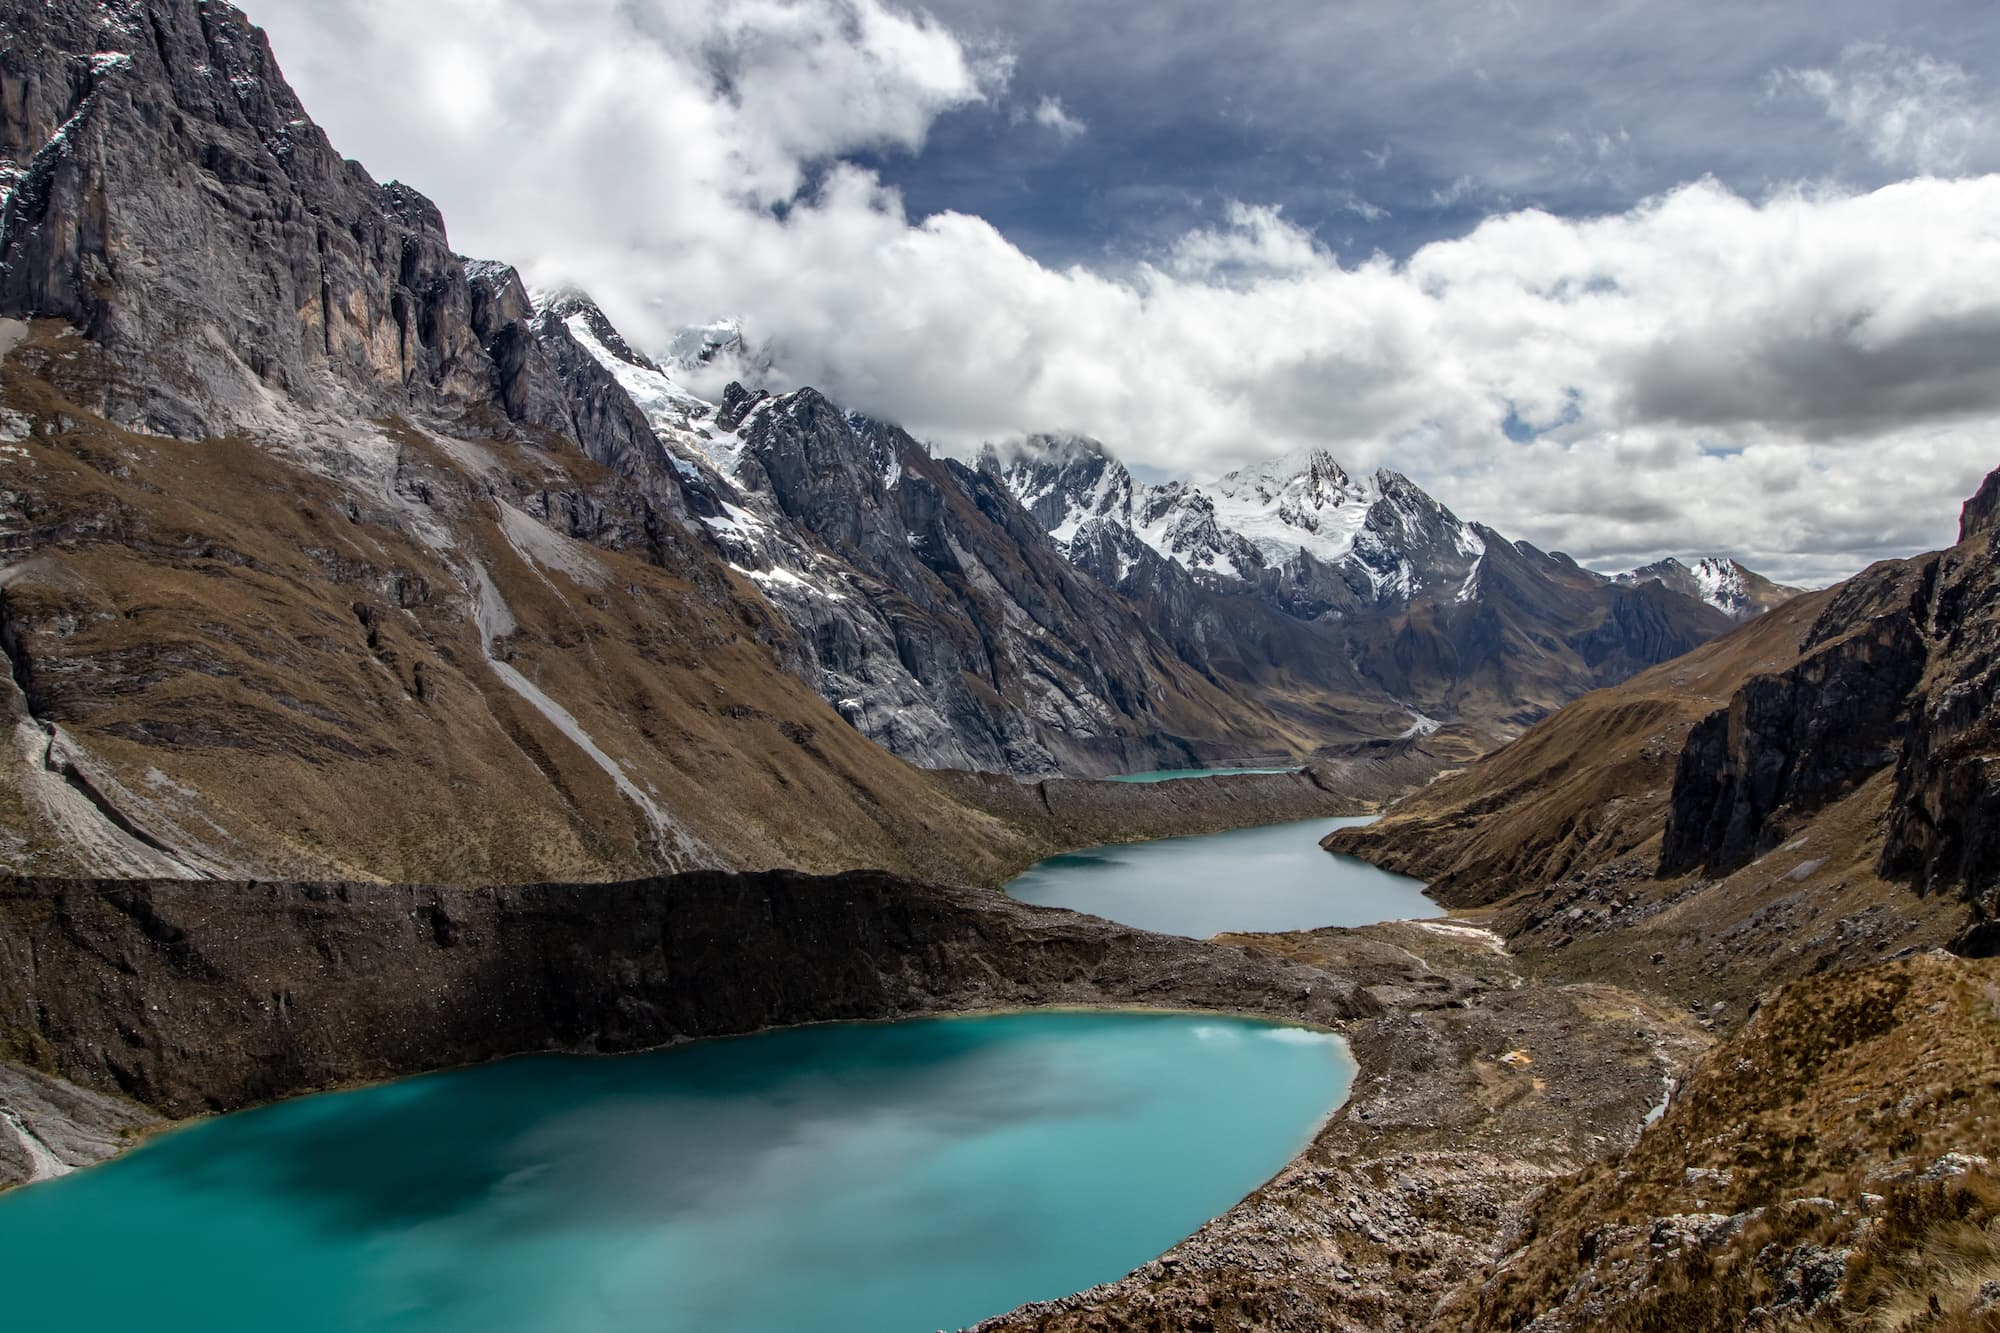 Cordillera Huayhuash Circuit, Peru // A round-up of 14 amazing domestic & international travel destinations at the top of their adventure bucketlist for 2019.